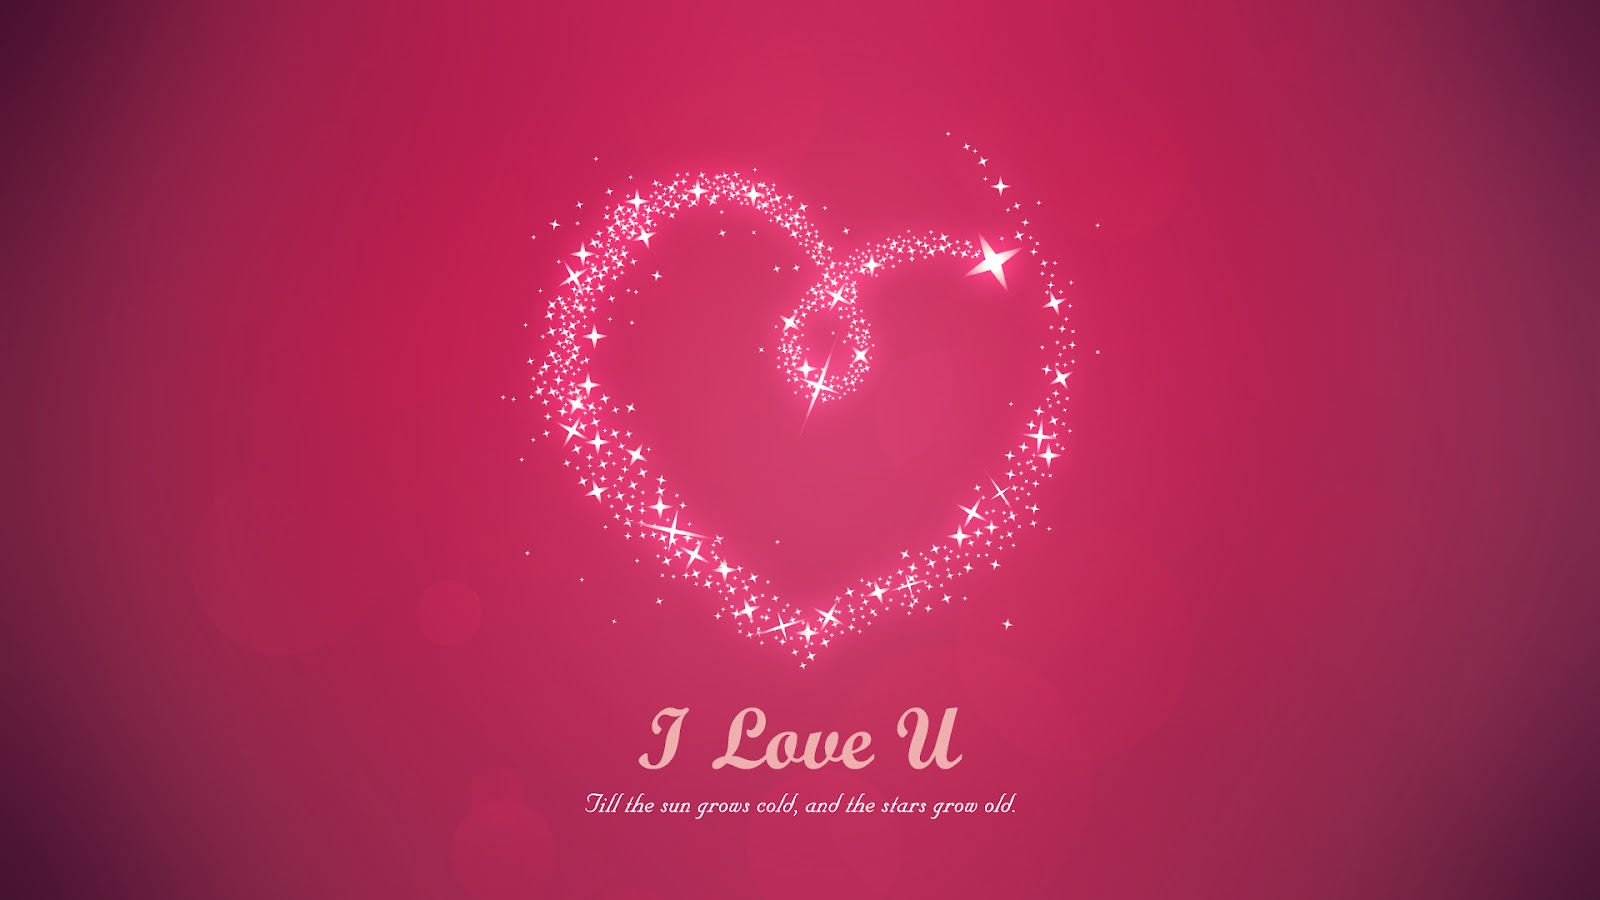 Love Wallpaper With Image : i love u wallpapers love wallpapers love quotes wallpapers sad love wallpapers sad ...